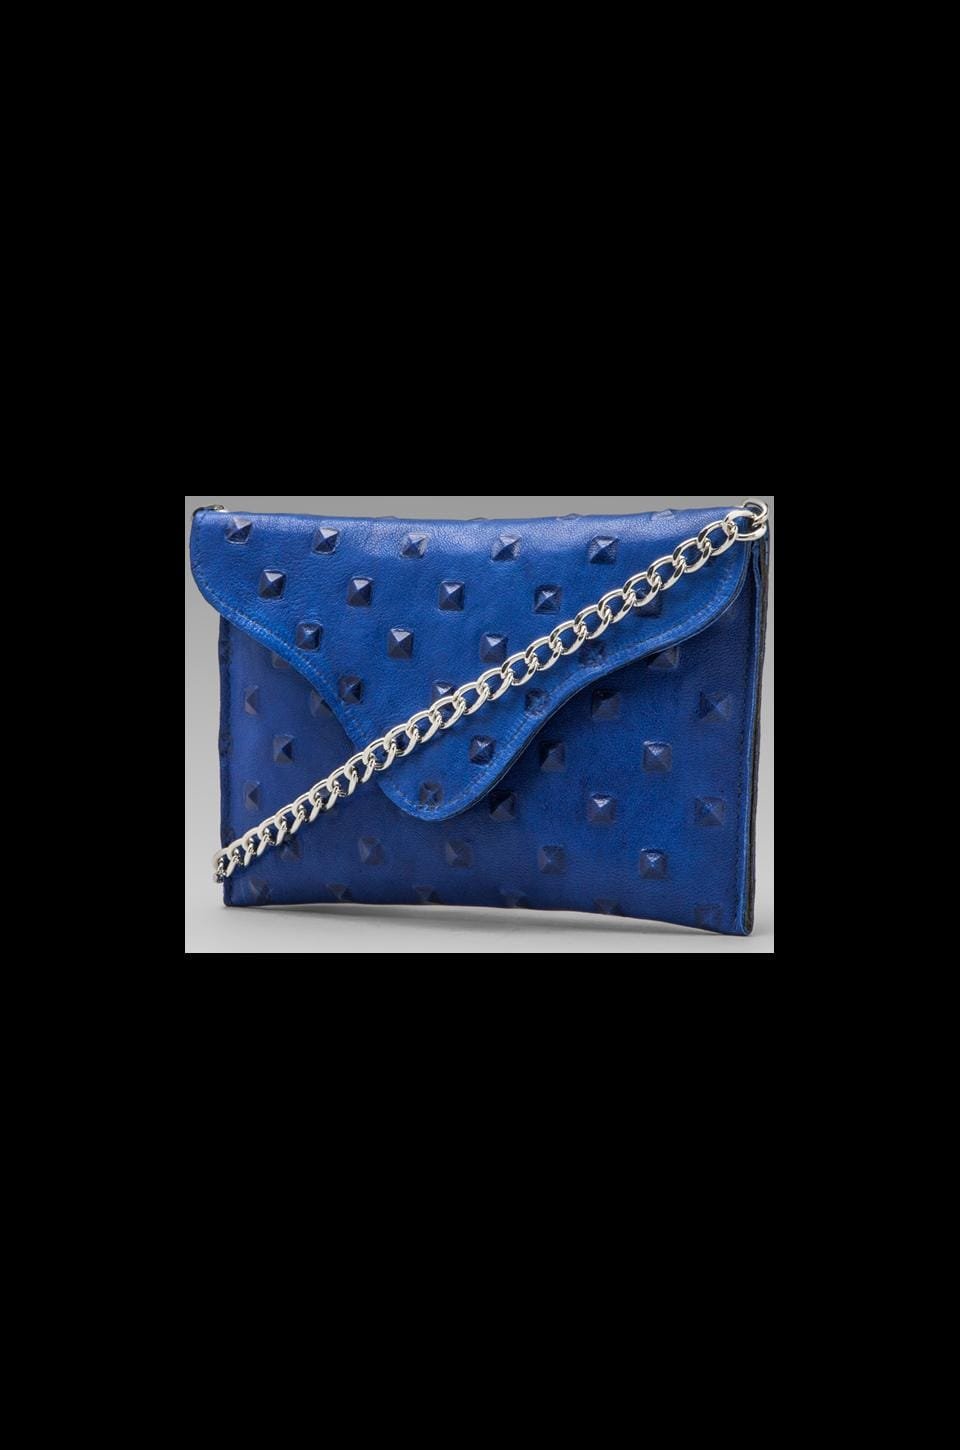 JJ Winters Pyramid Bag in Electric Blue